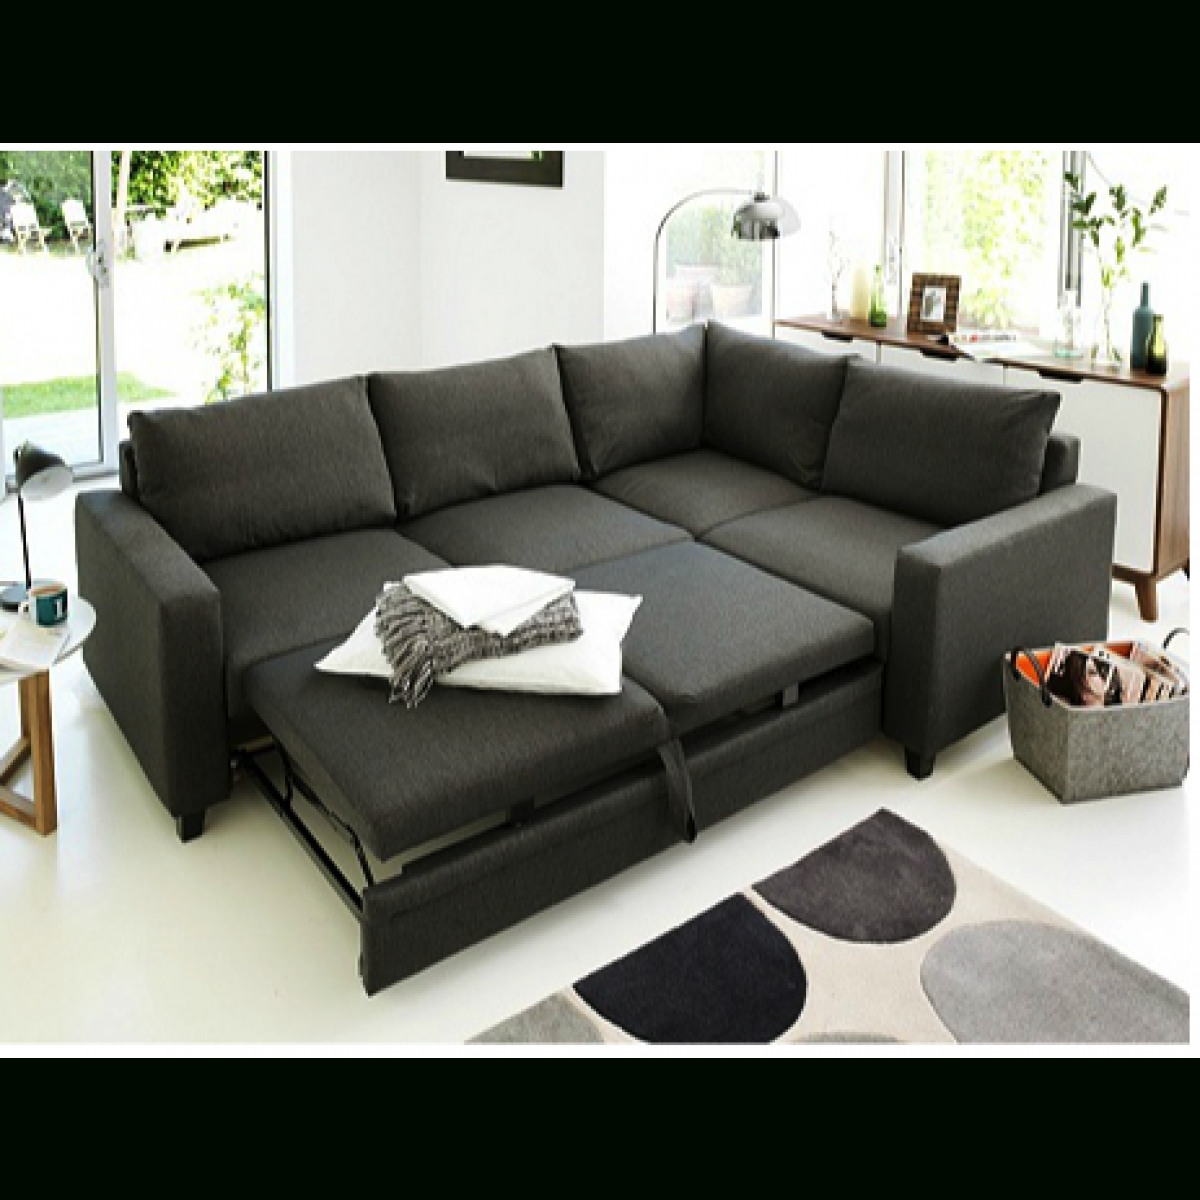 Hygena Seattle Right Hand Corner Sofa Bed – Charcoal (View 5 of 20)